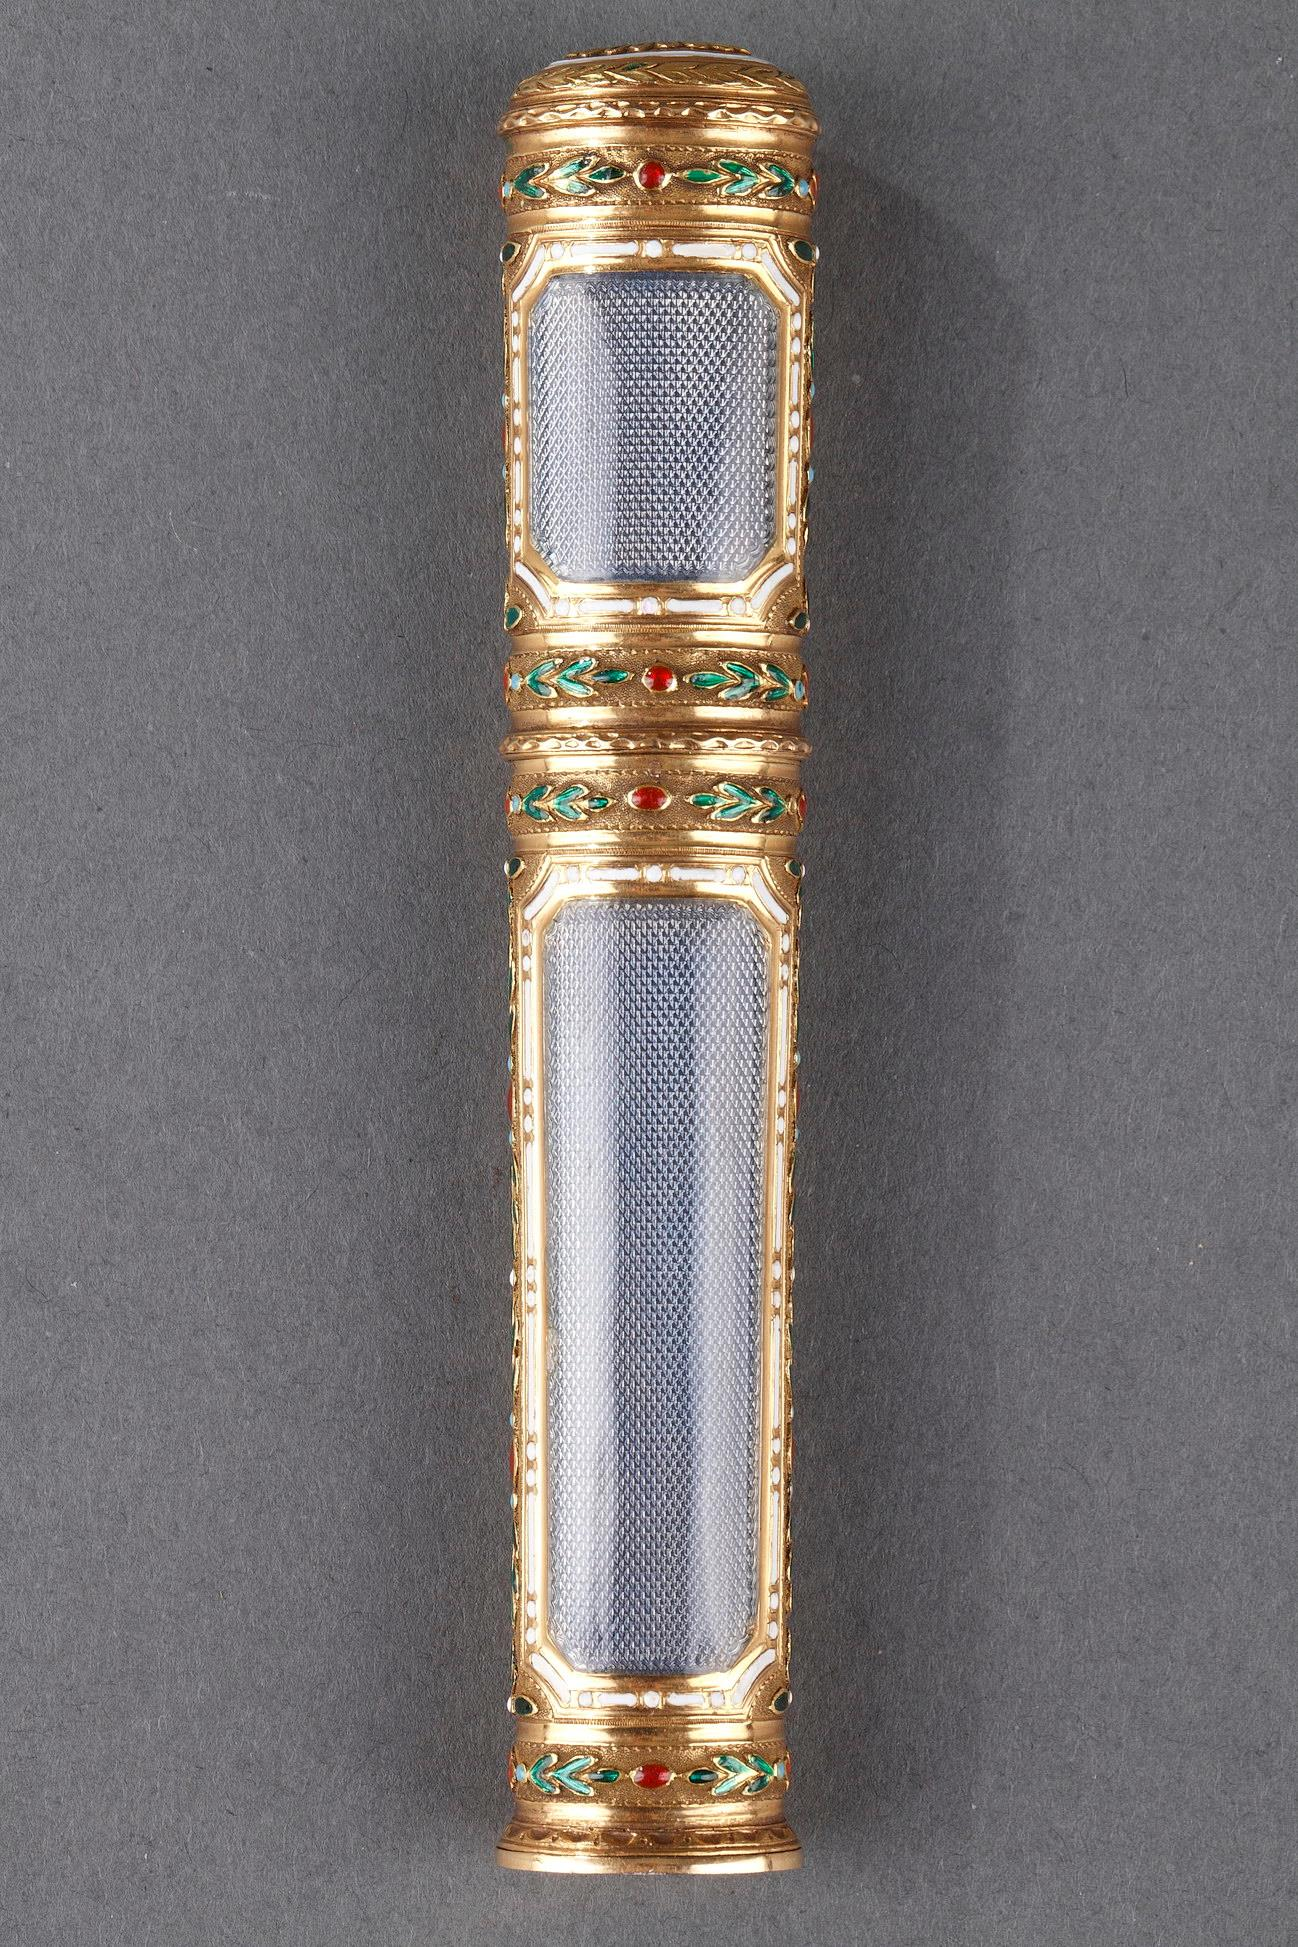 GOLD AND ENAMEL CASE FOR WAX.<br/>LOUIS XVI PERIOD.